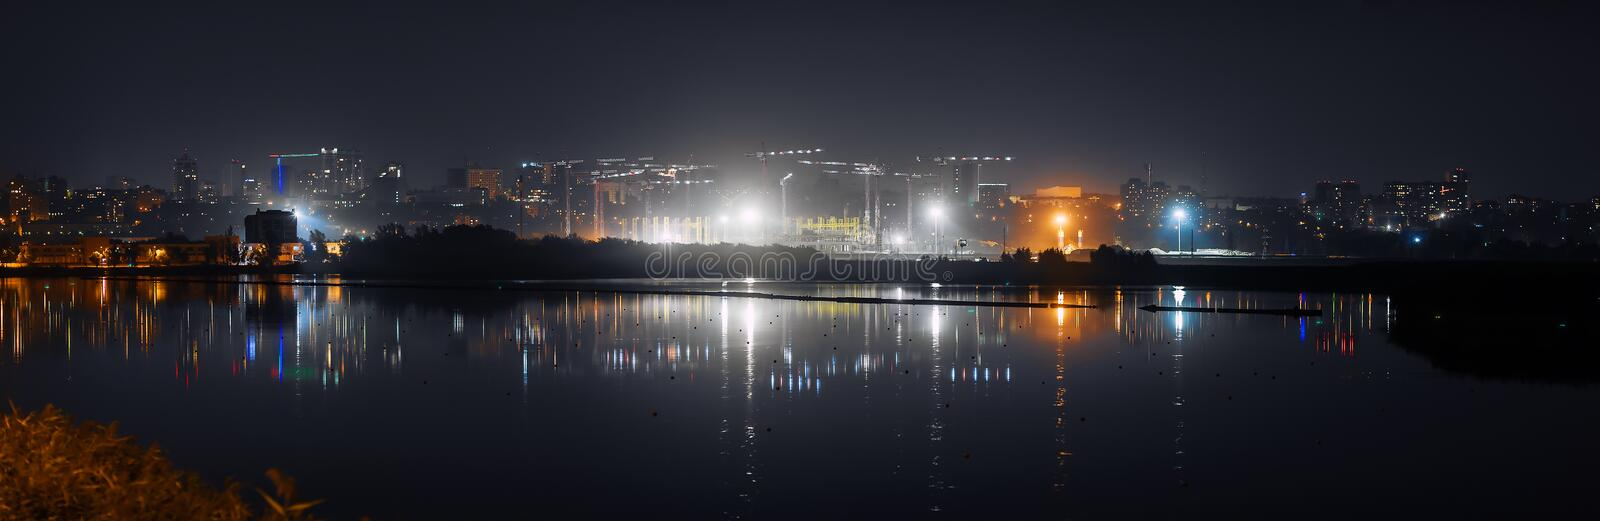 Night city and construction site, Reflected in the water royalty free stock photography